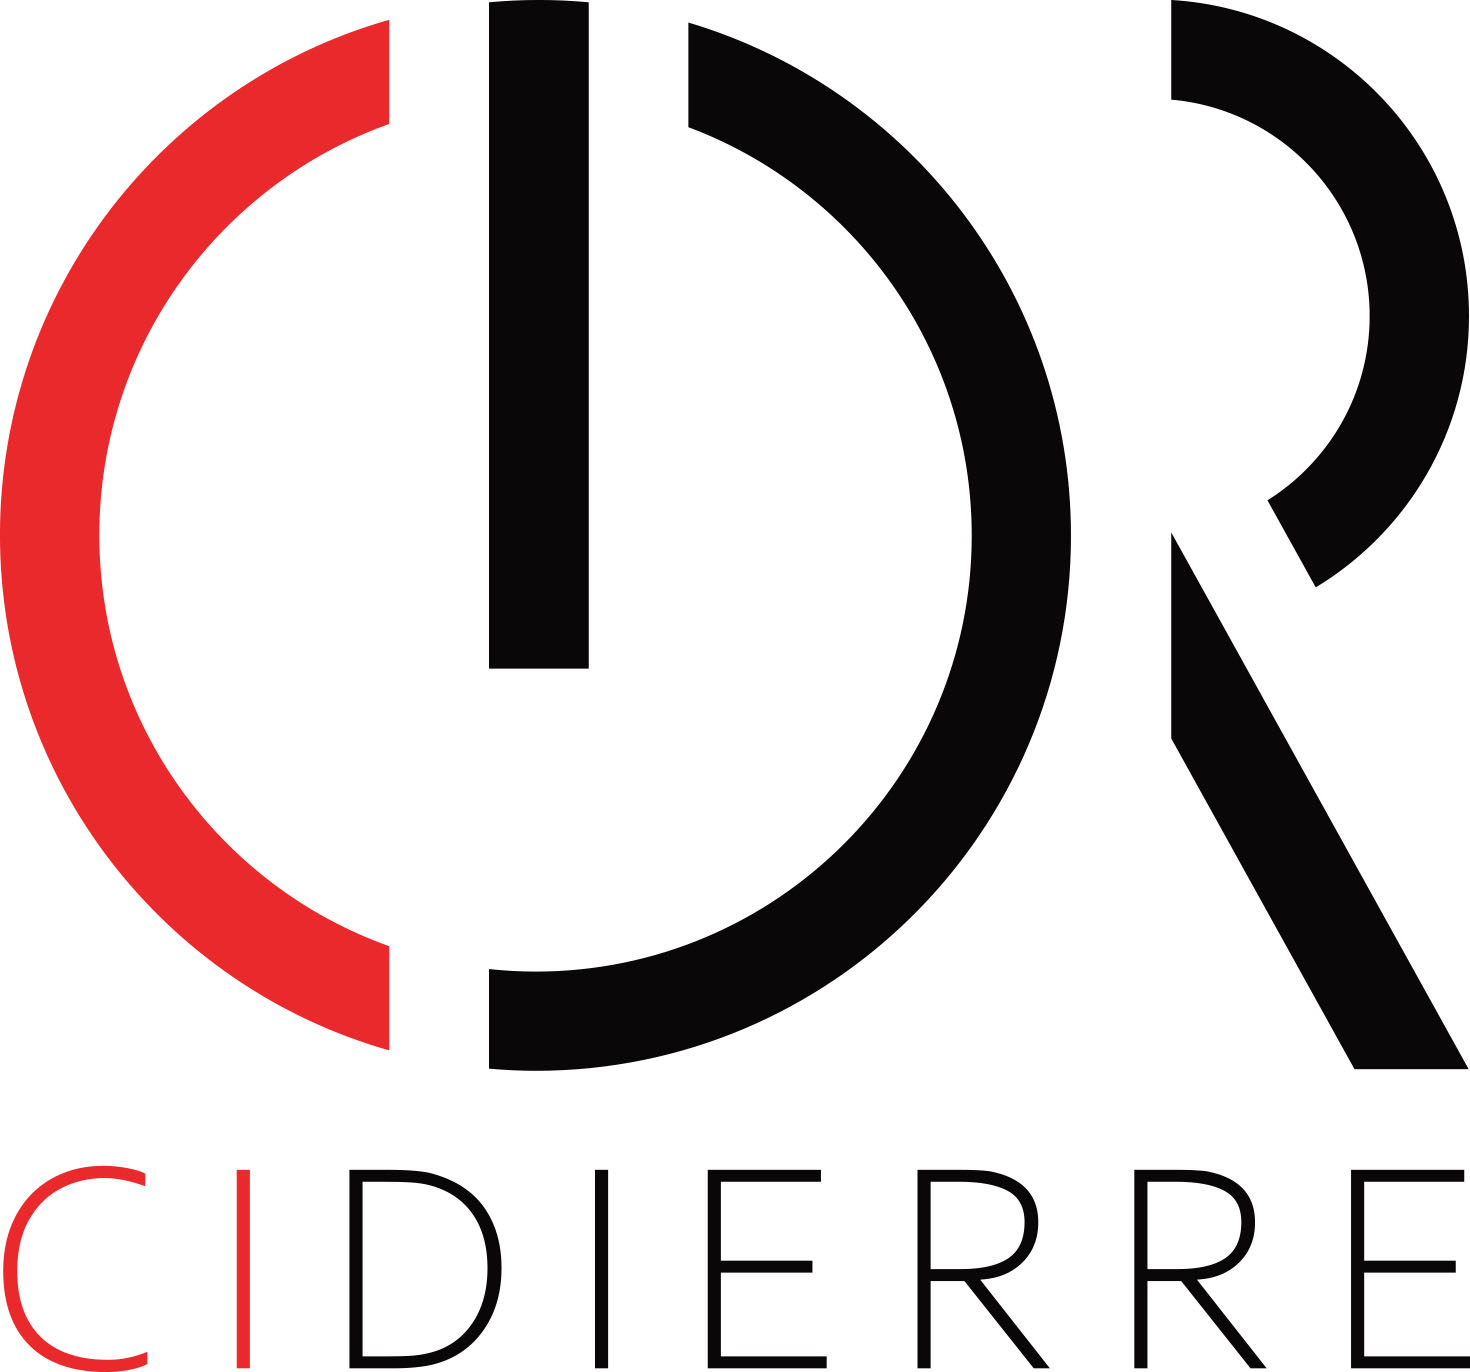 CDR Logo Approved 04 02 2019 Color Correction